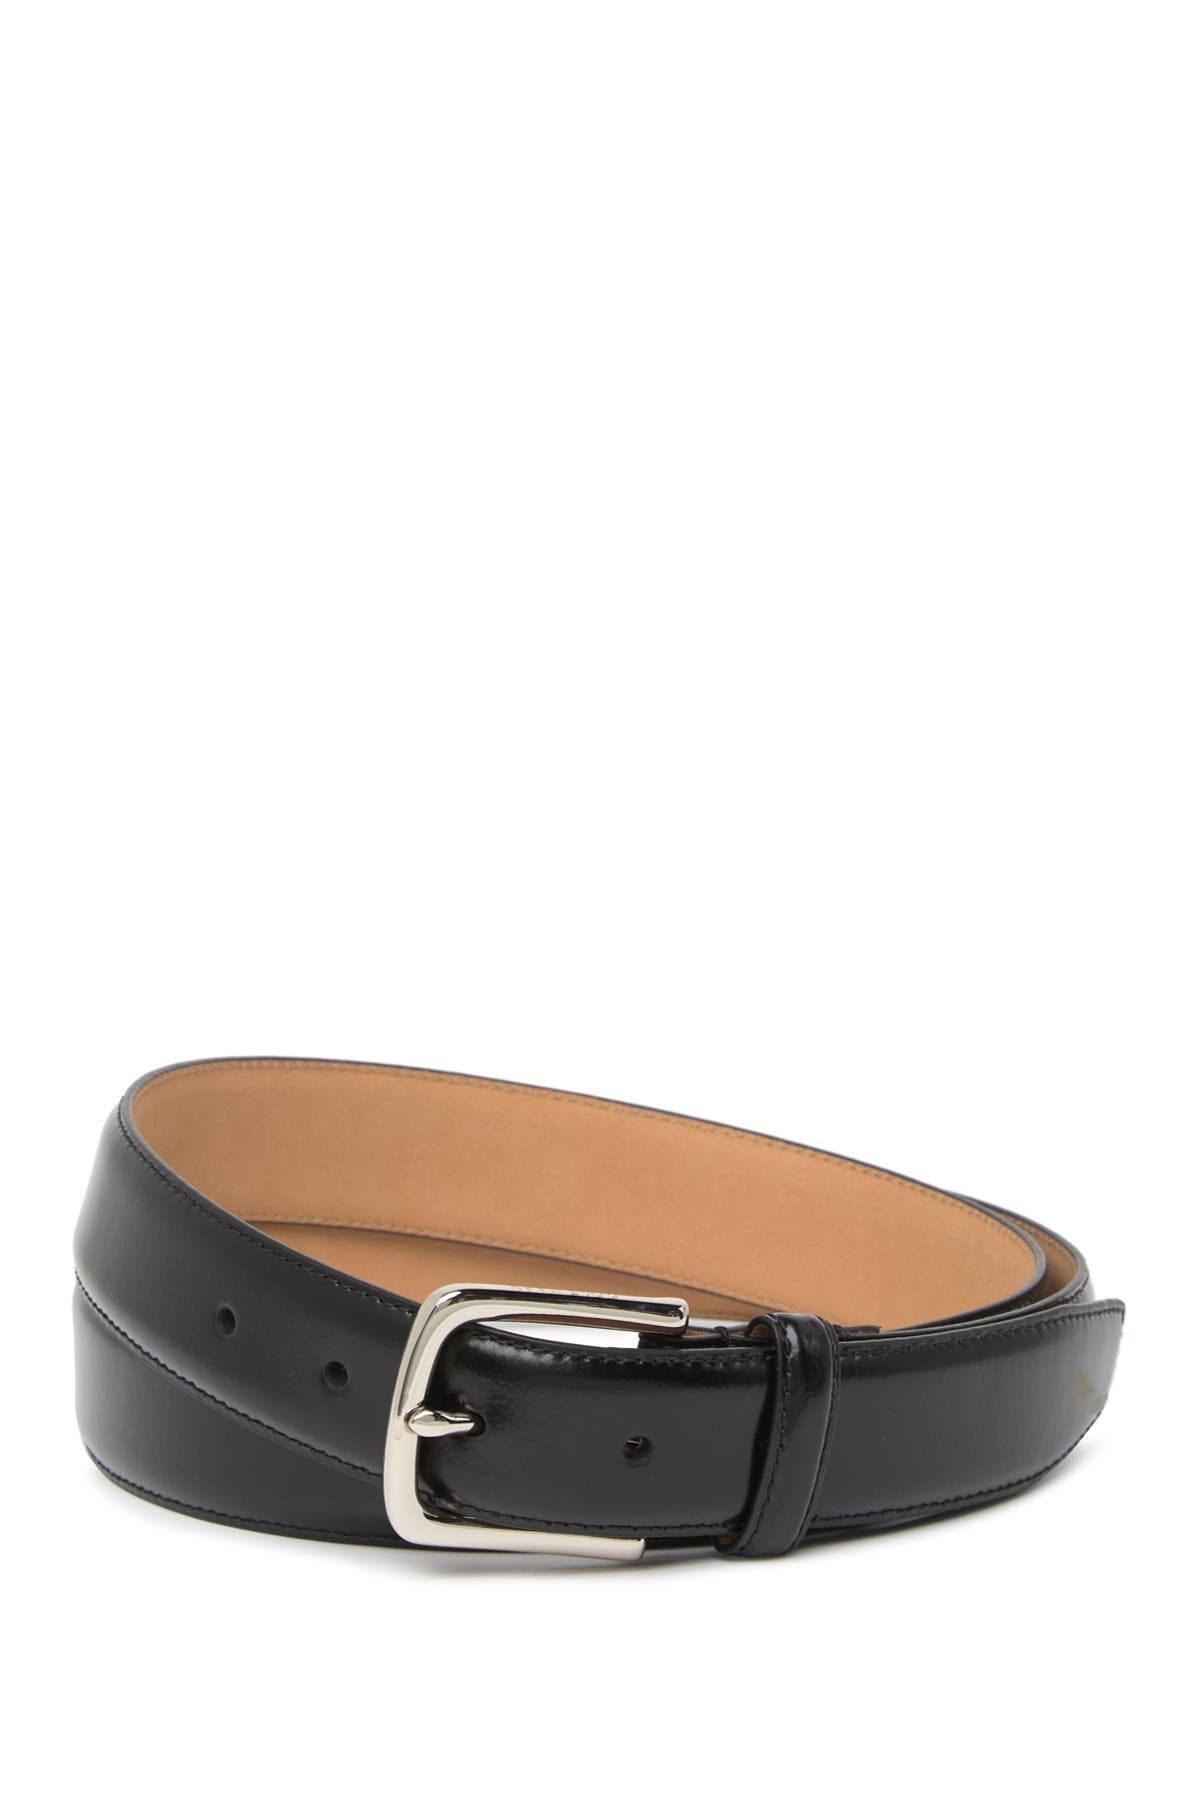 Image of Cole Haan Classic Leather Belt